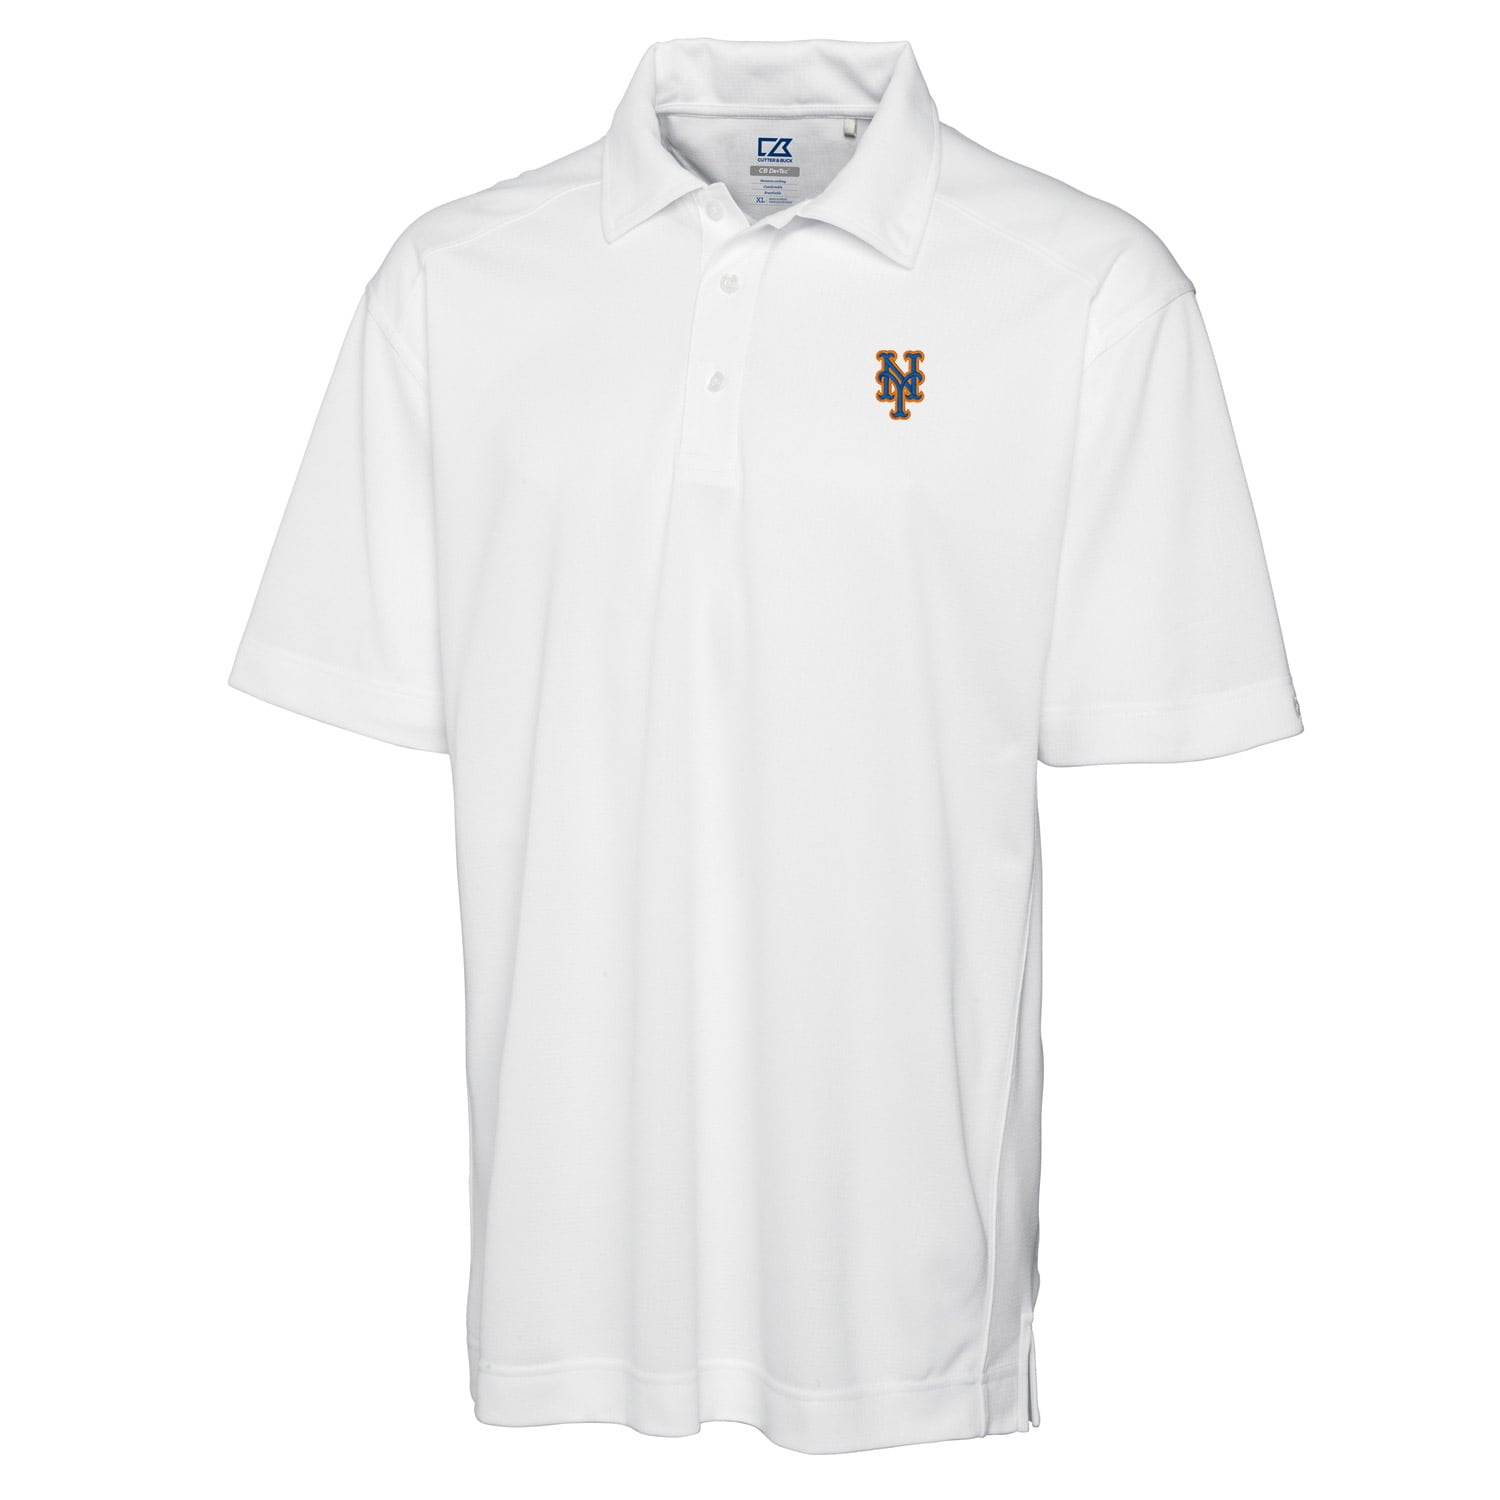 New York Mets Cutter & Buck Big & Tall DryTec Genre Polo - White